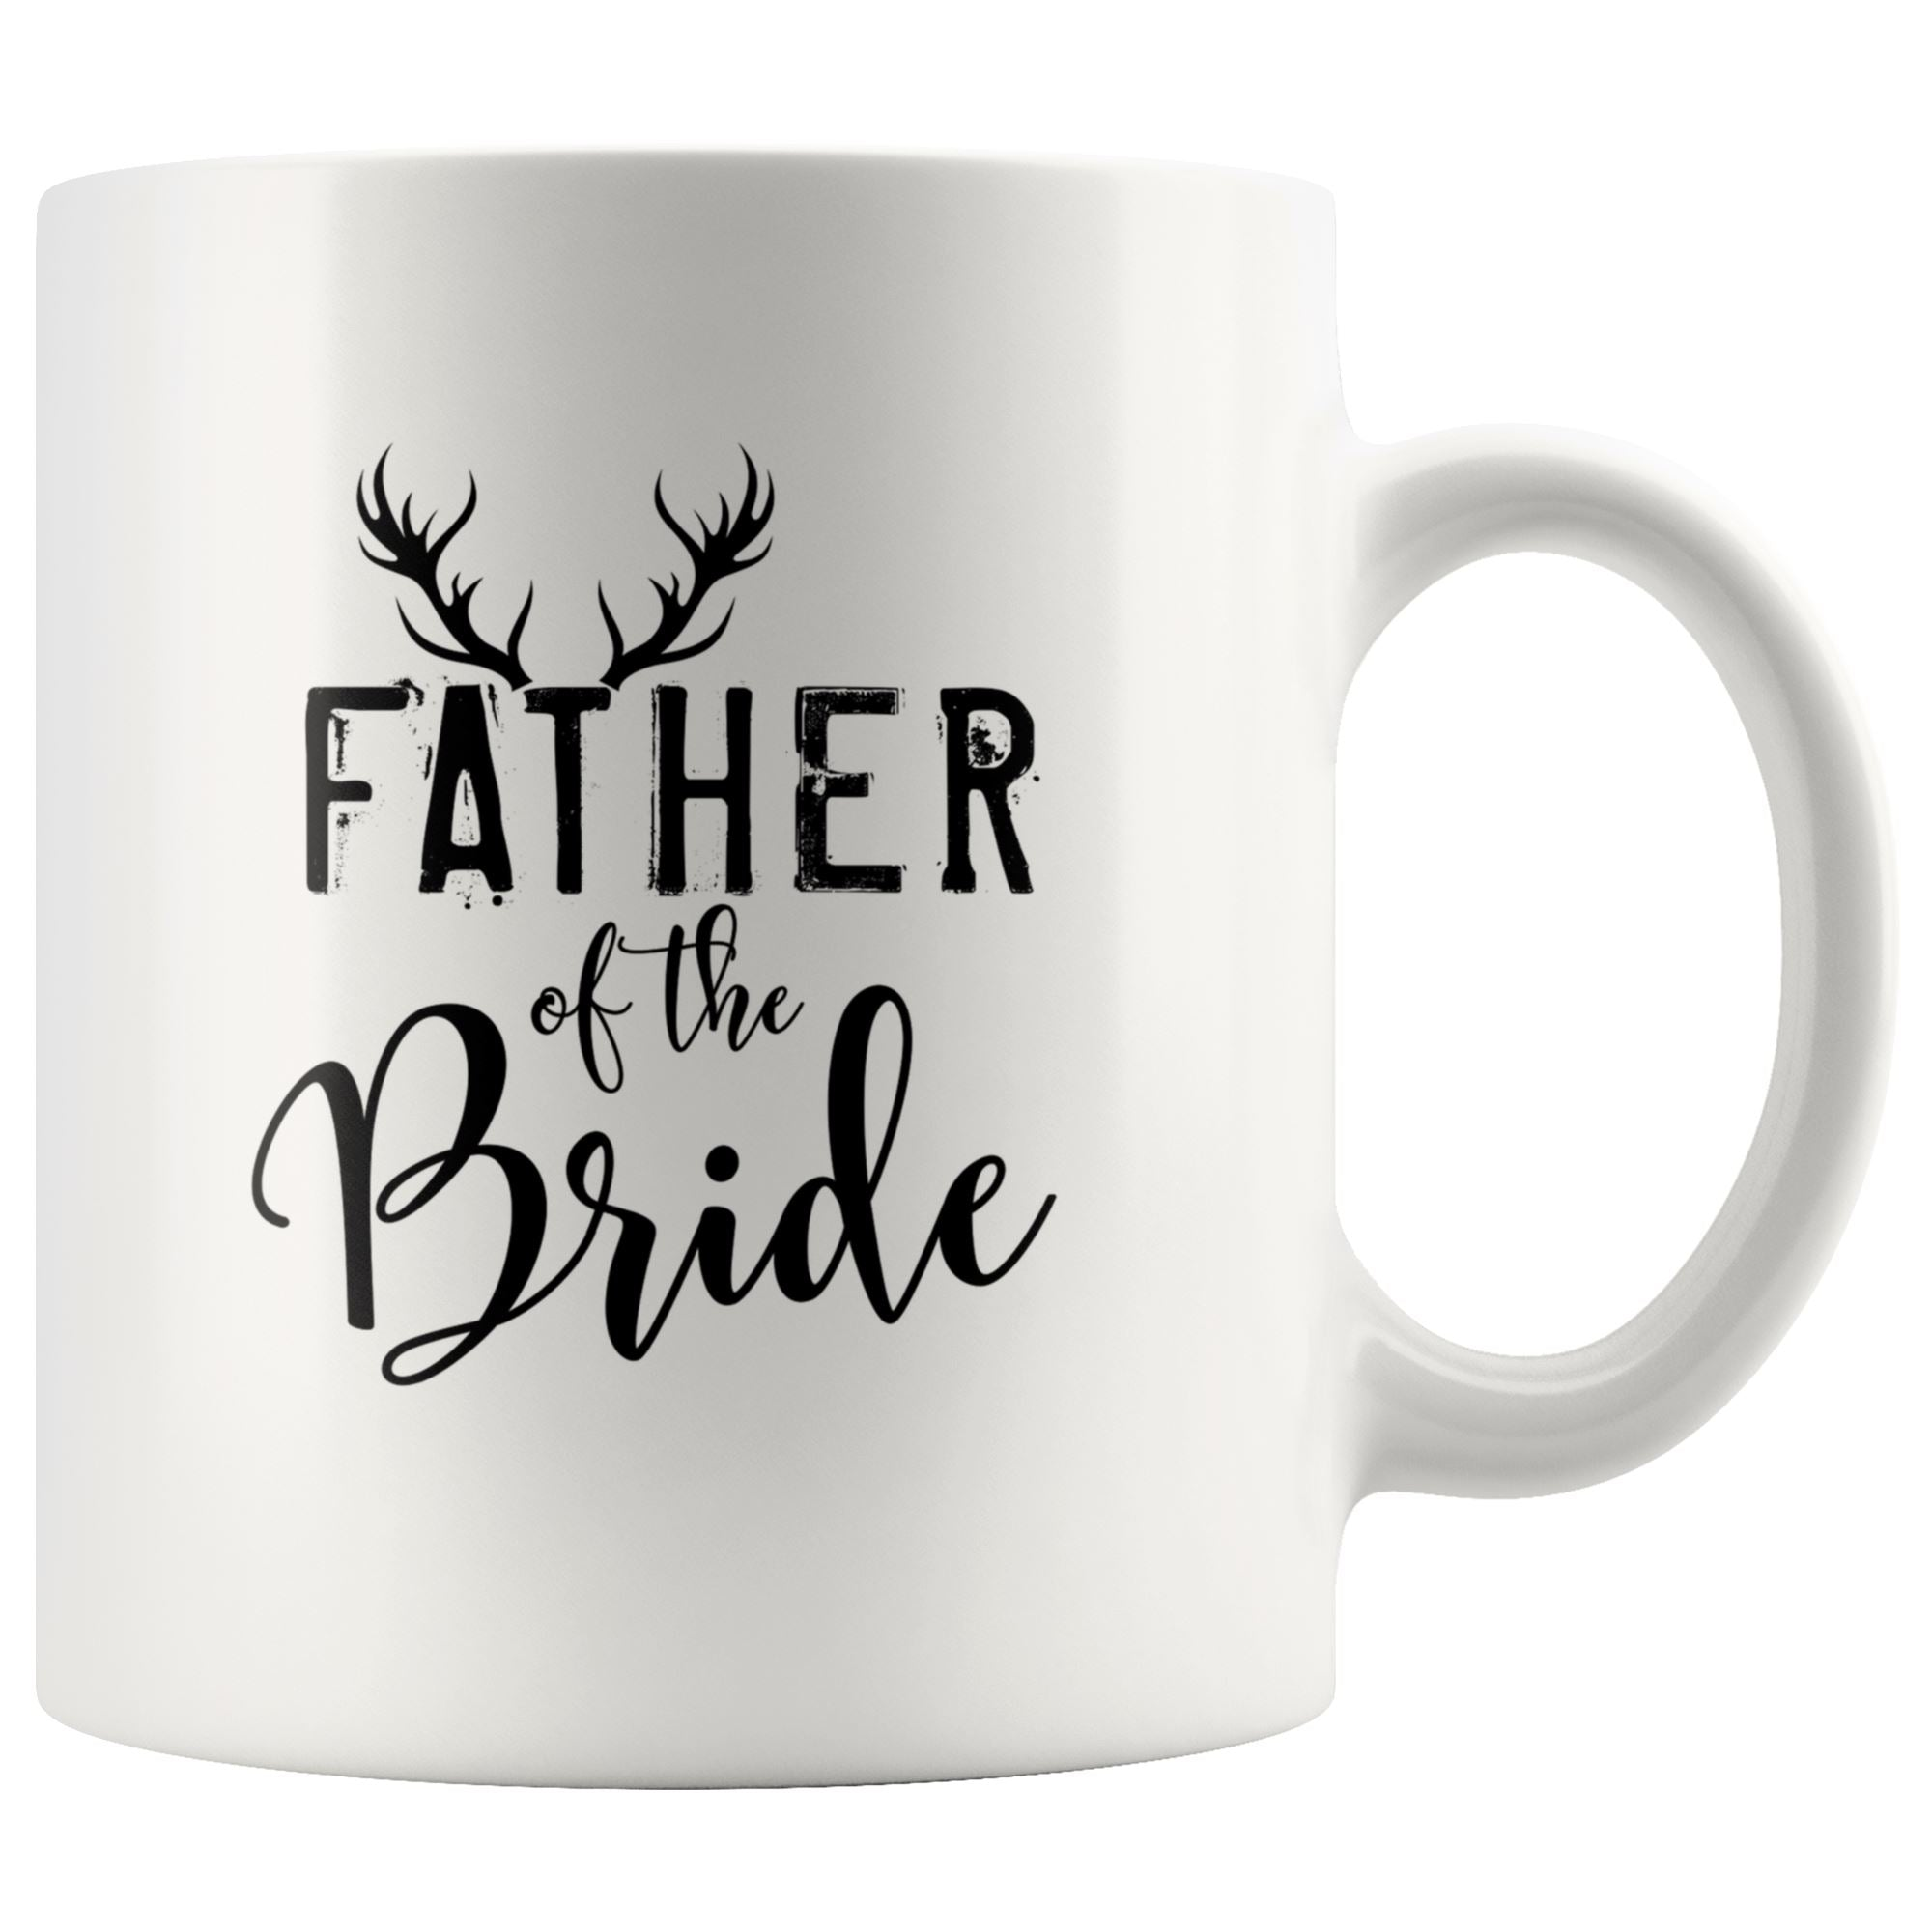 Father of the Bride Drinkware teelaunch 11oz Mug